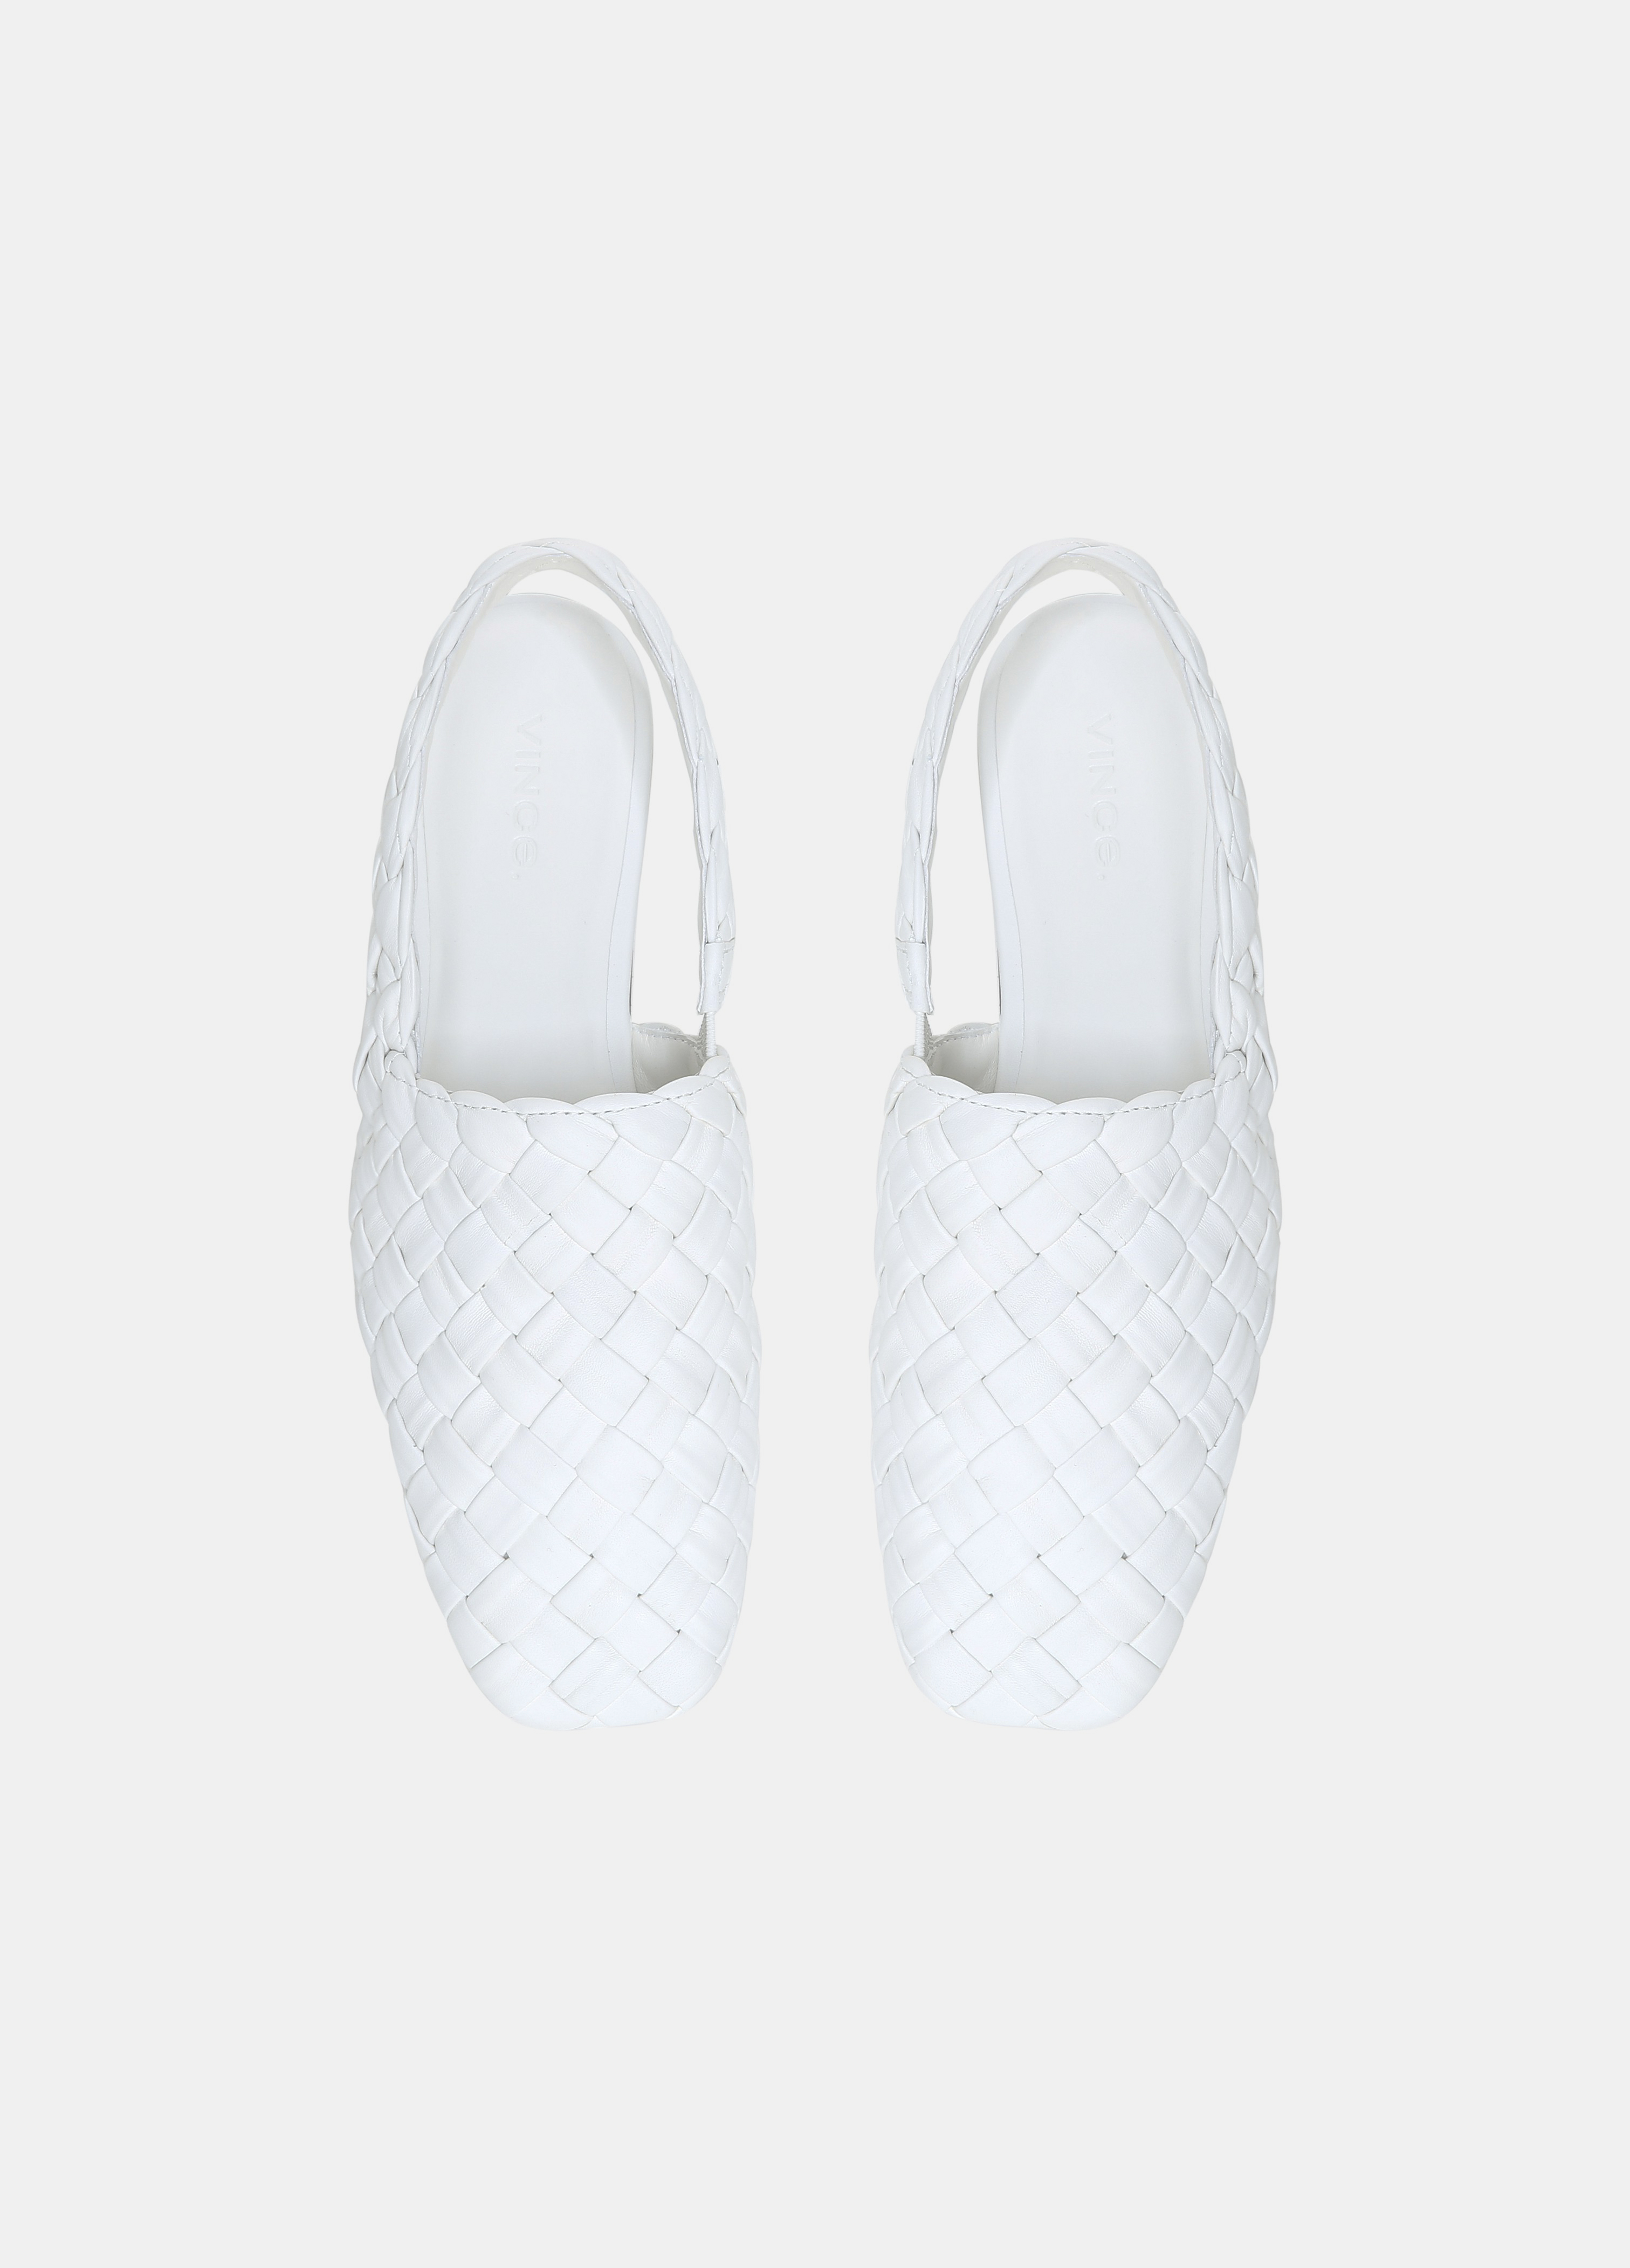 Cadot Leather Woven Shoe